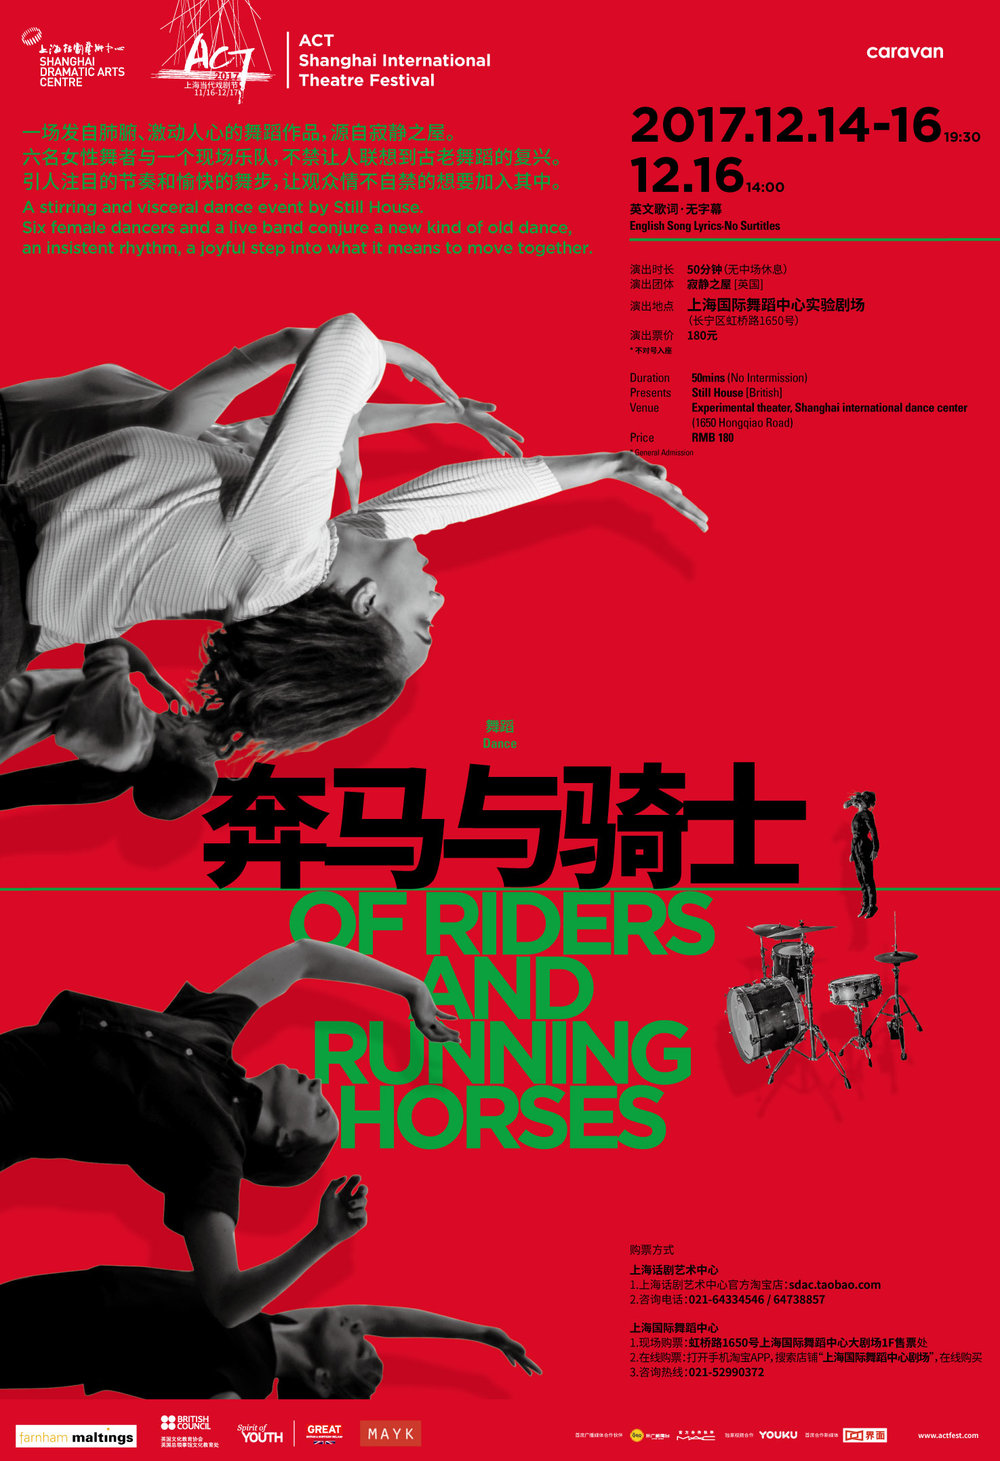 04.ACT.poster.Of Riders.20170914-01.jpg